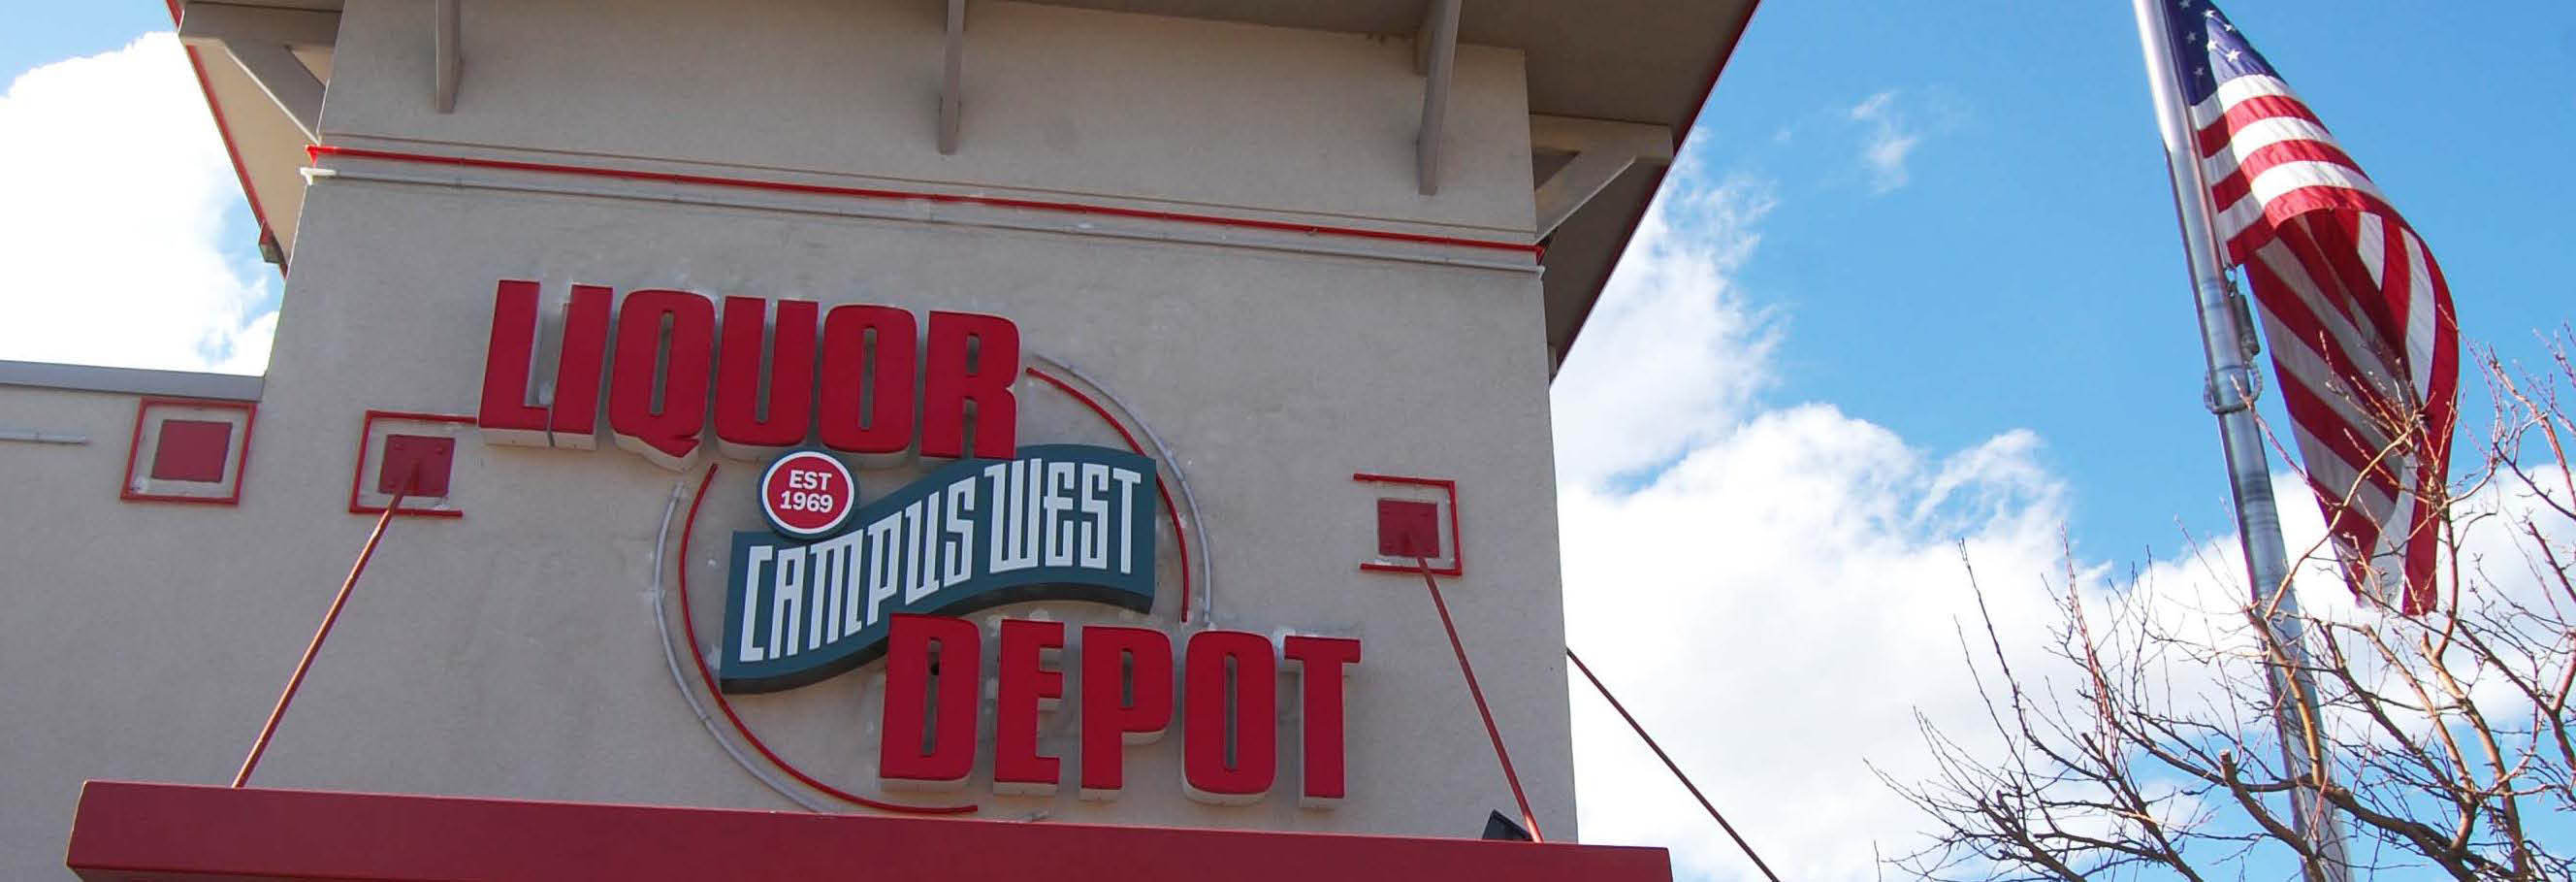 Campus West Liquors near Colorado State University in Fort Collins, Colorado